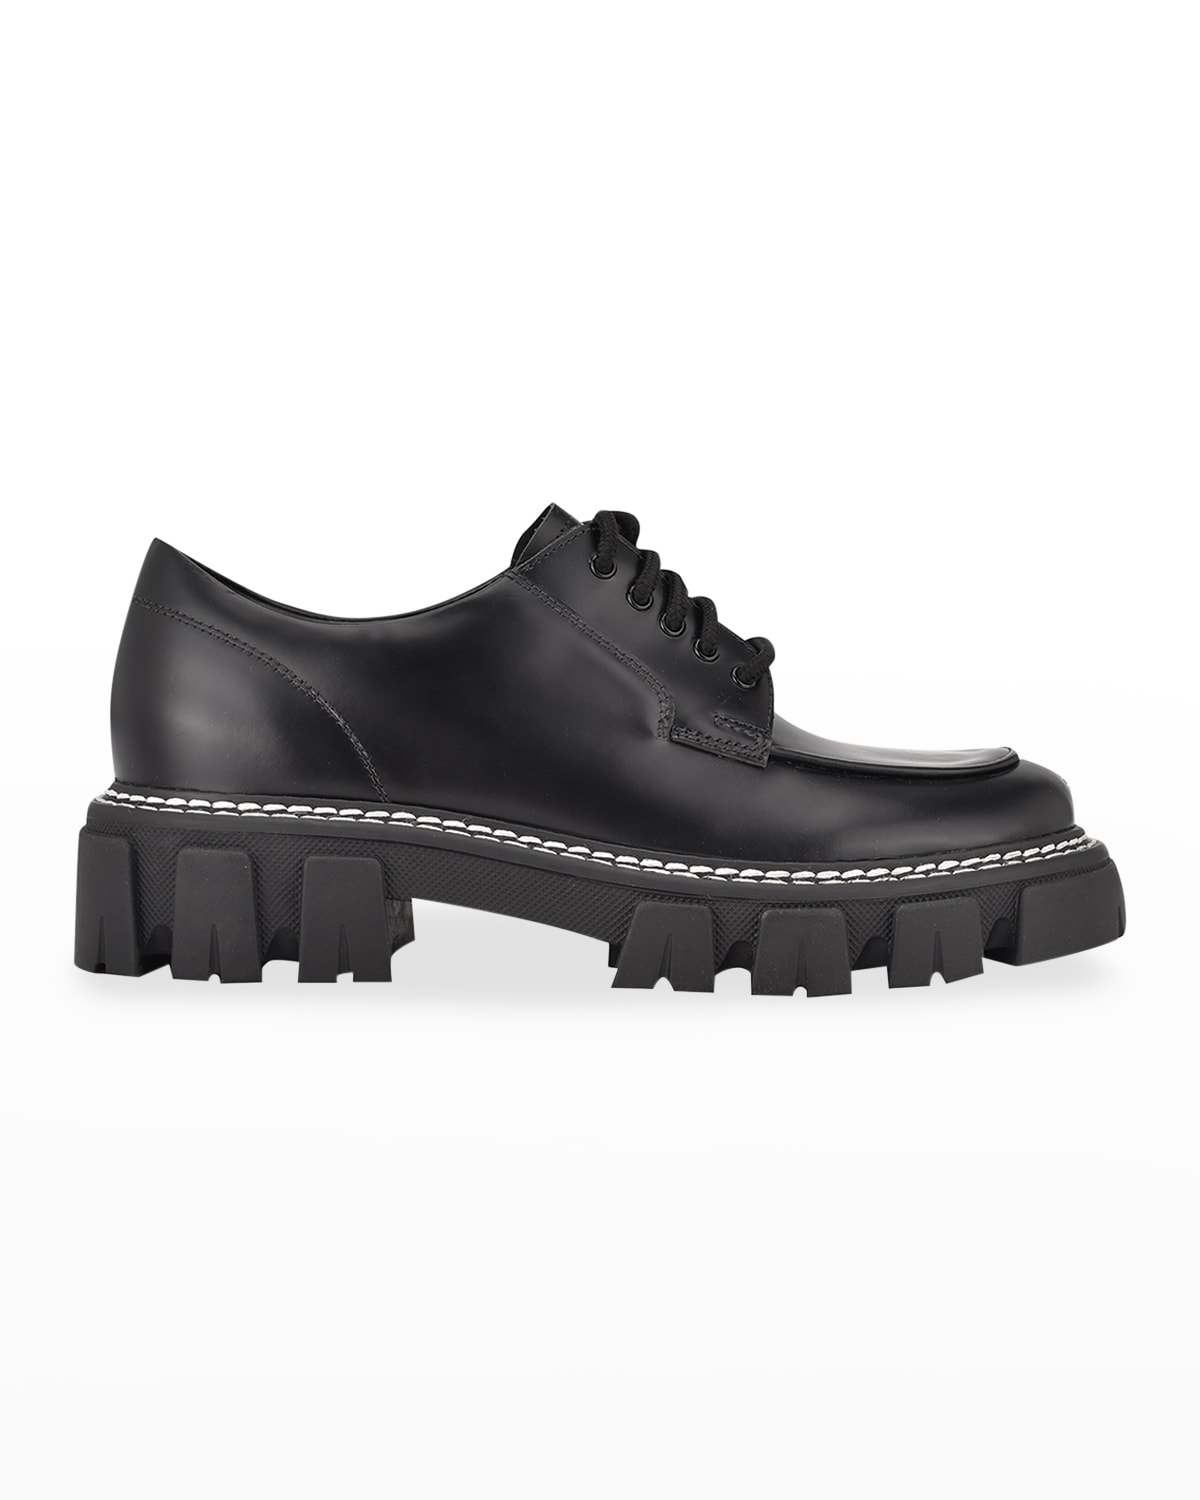 Dorin Leather Lug-Sole Oxford Loafers